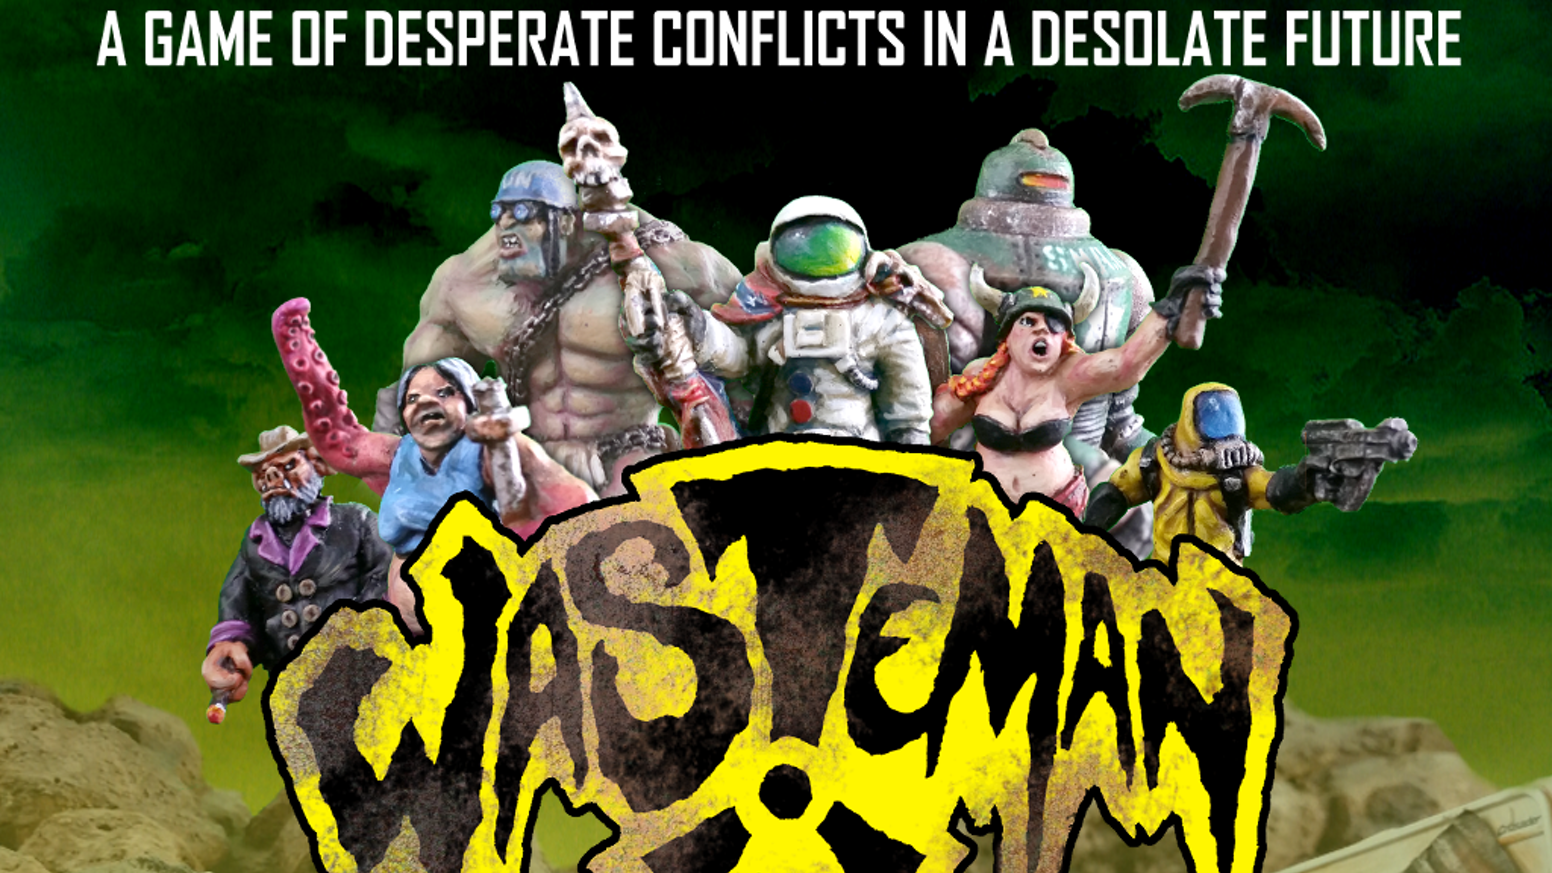 Prepare yourself for the bizarre as you venture deep into a world of radioactive insanity with this tabletop miniature game!